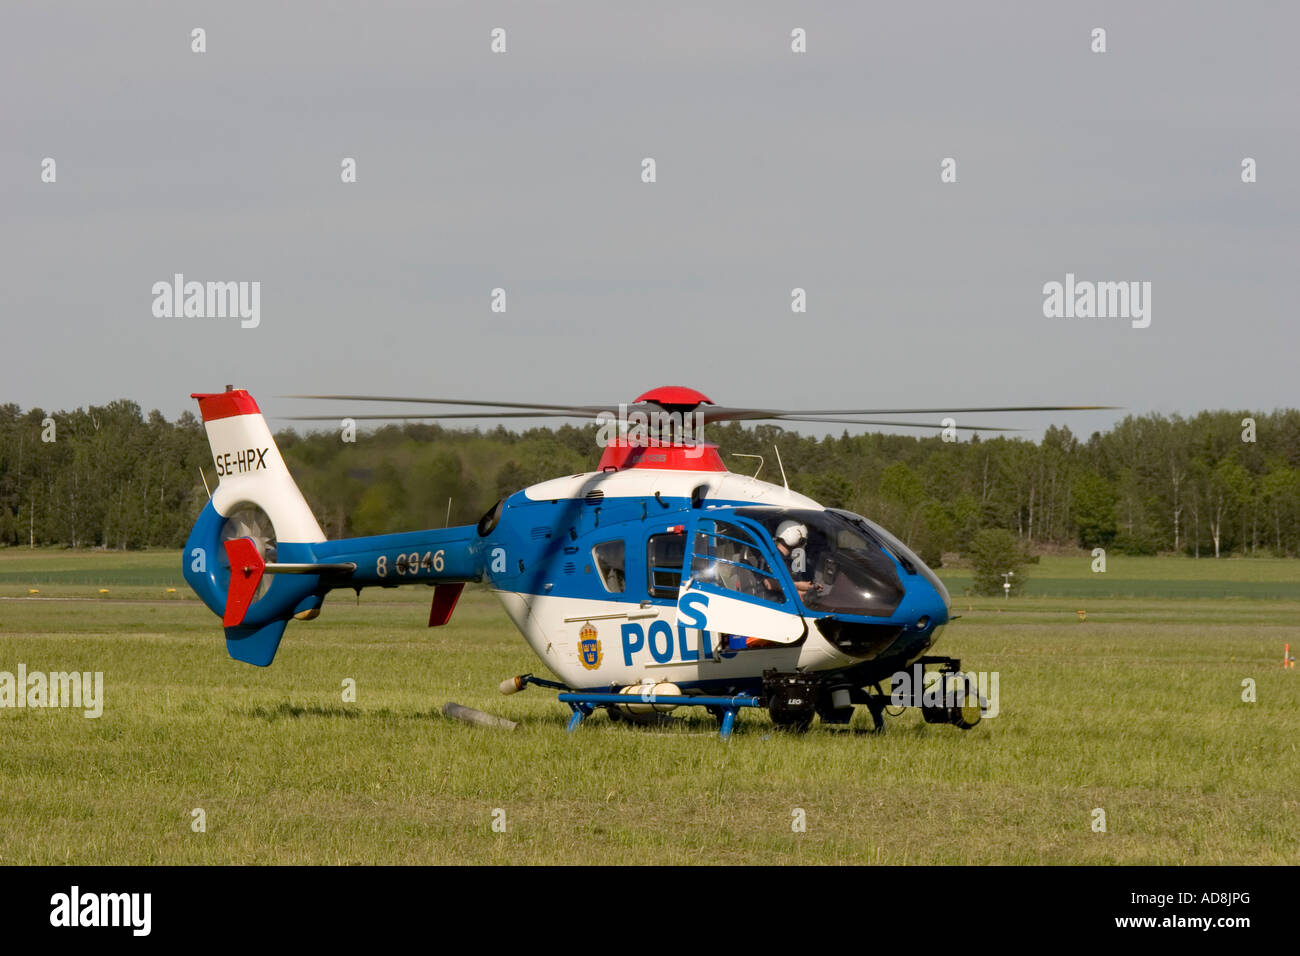 Police helicopter in Sweden - Stock Image